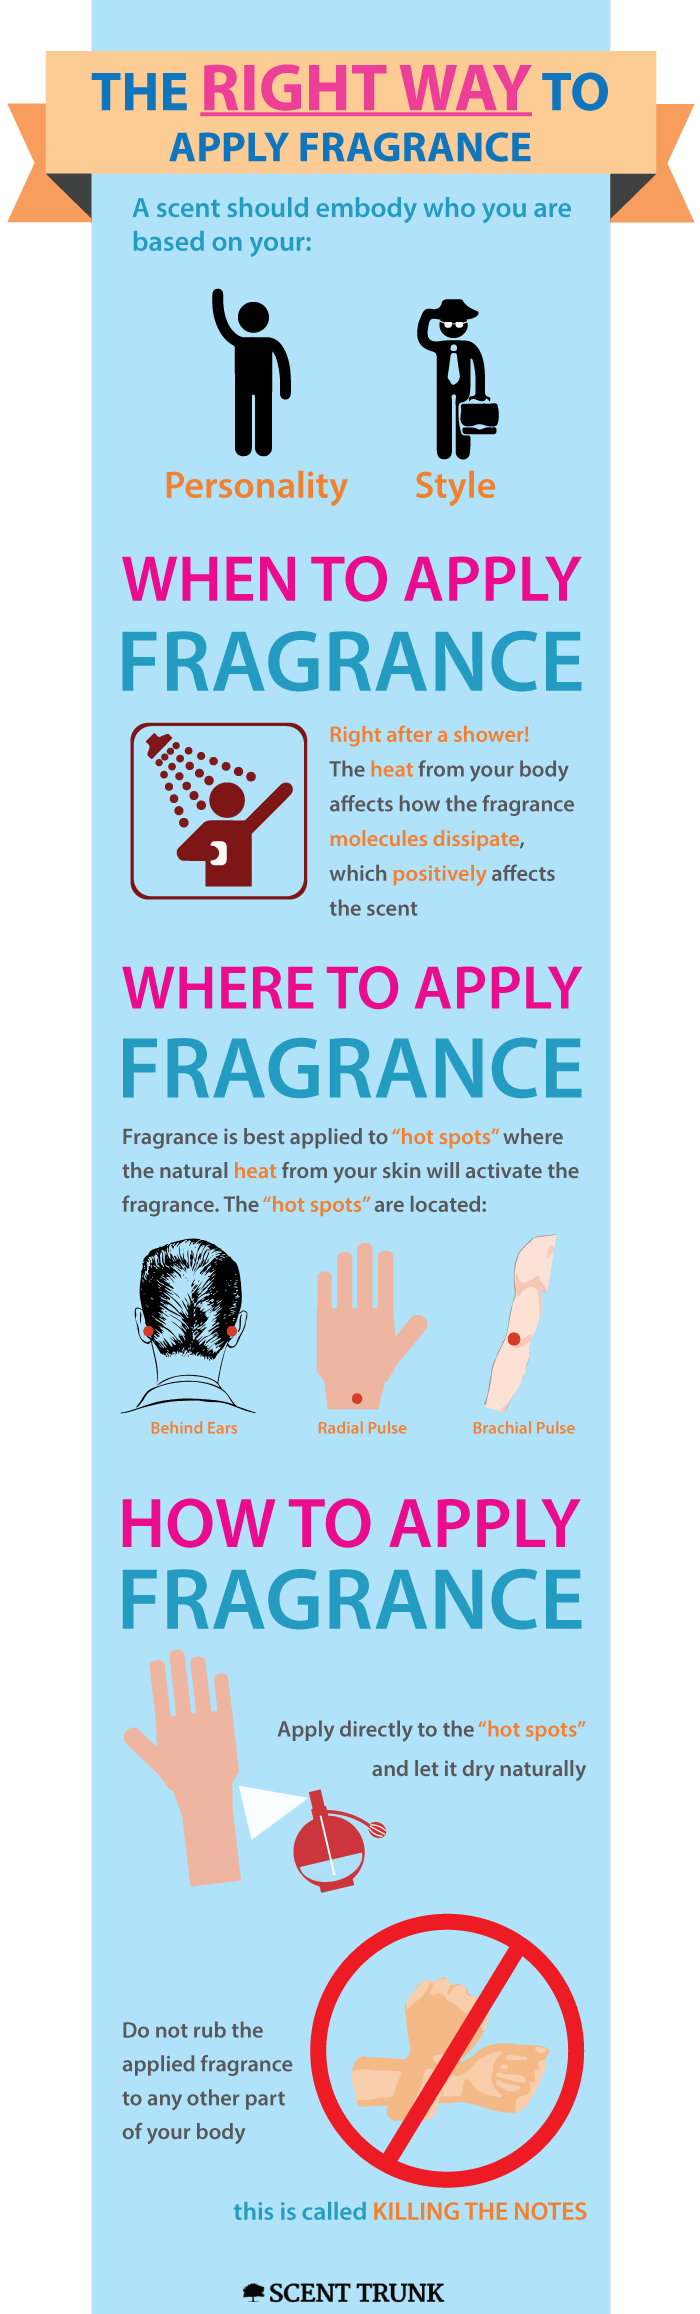 Fragrance scent beauty health. Perfume clipart pleasant smell